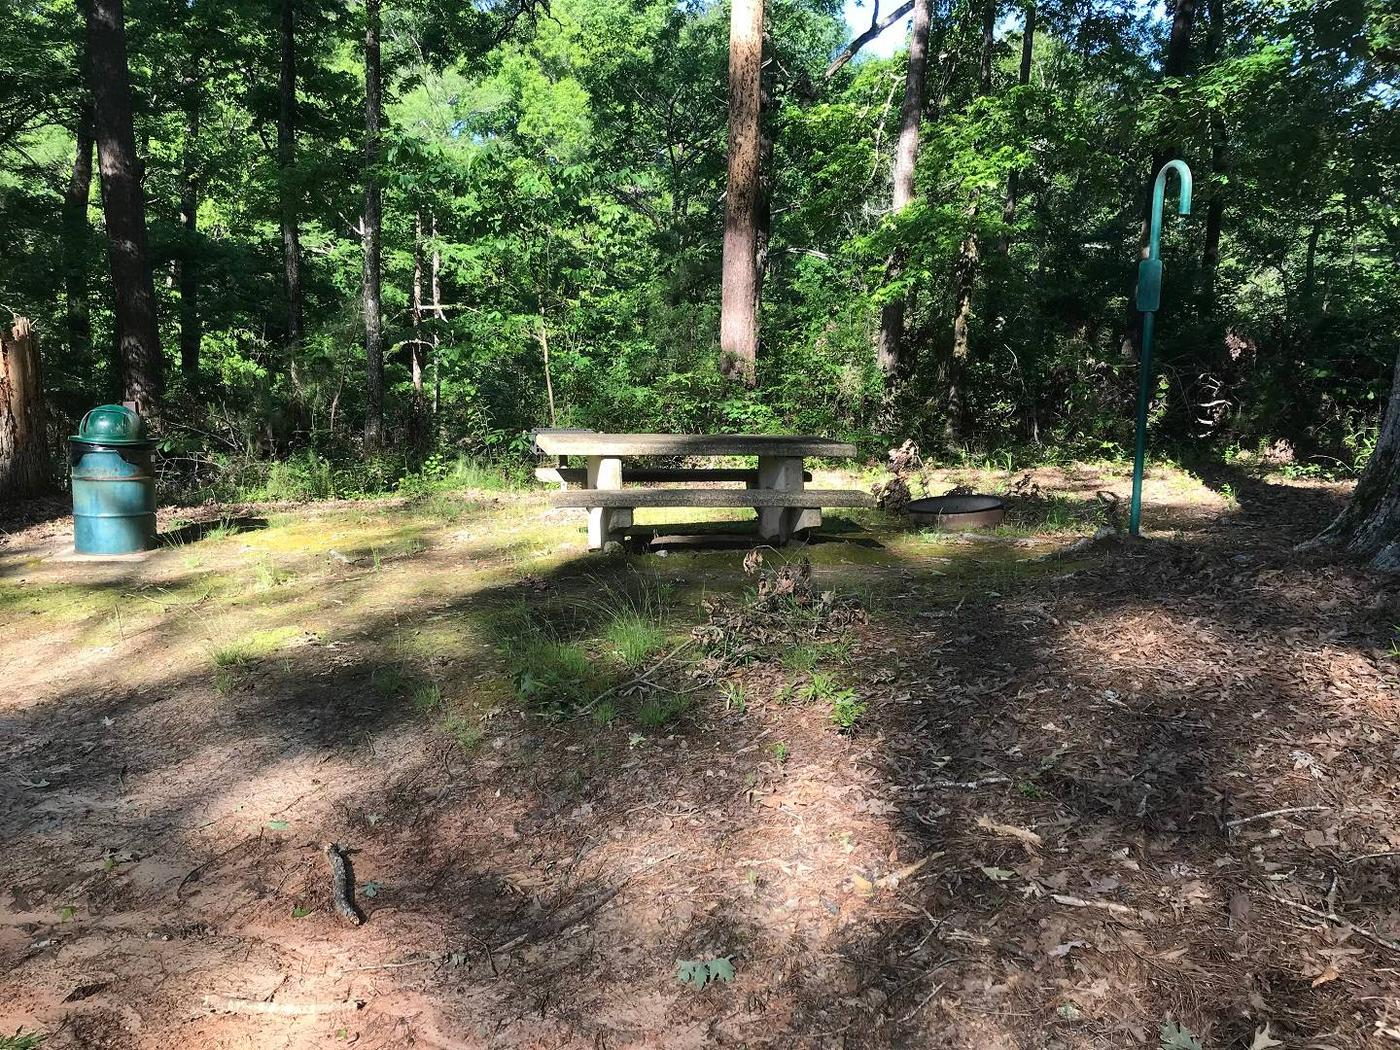 Campsite 9Campsite #9. Tent site with the following amenities: fire-pit, grill, picnic table, lantern pole, trash can.  Located along bayou.